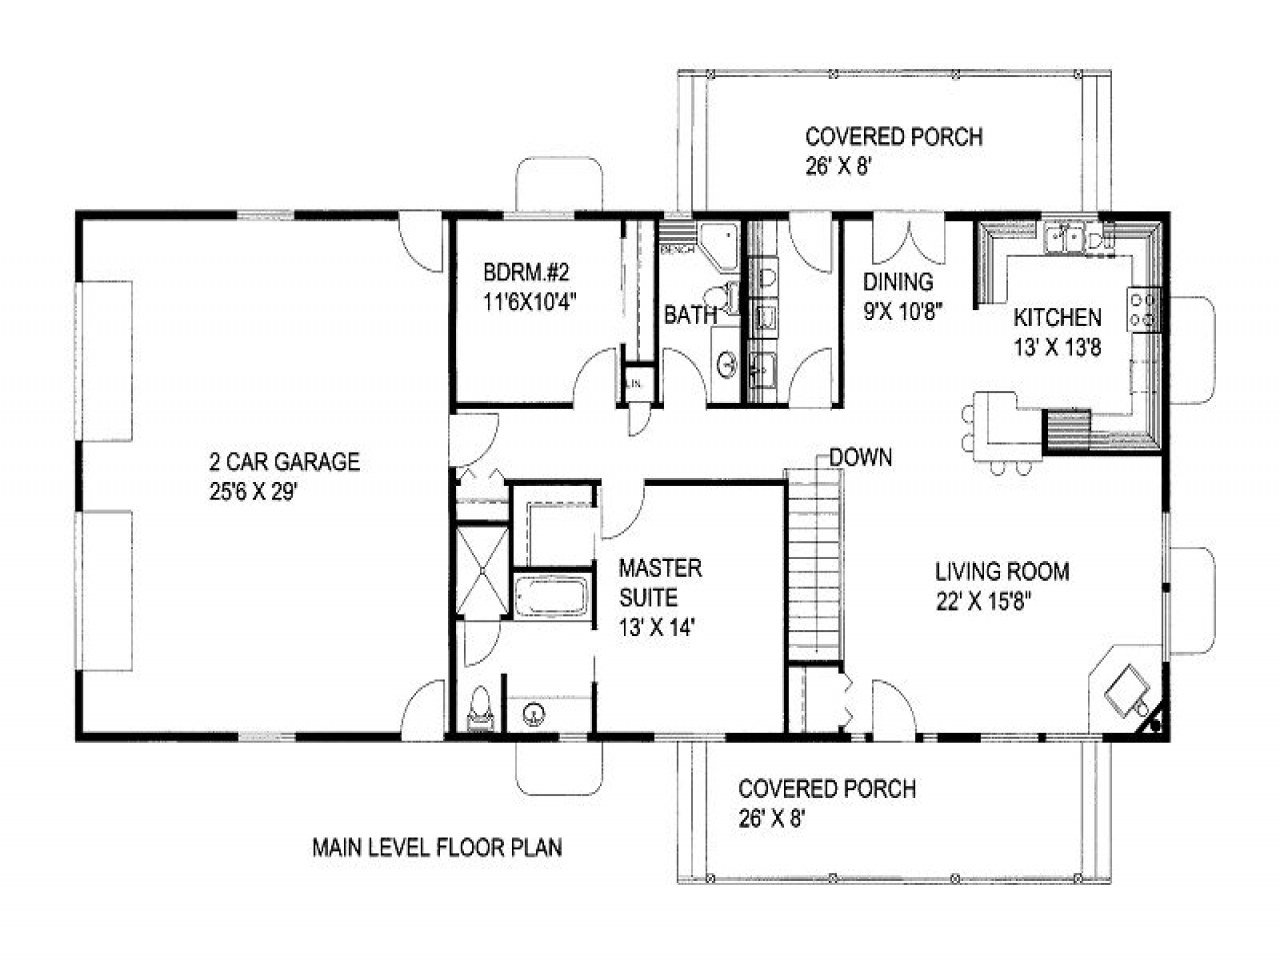 1500 Square Feet House Plans 1500 Square Foot House Plans 2 Bedroom 1300 Square Foot